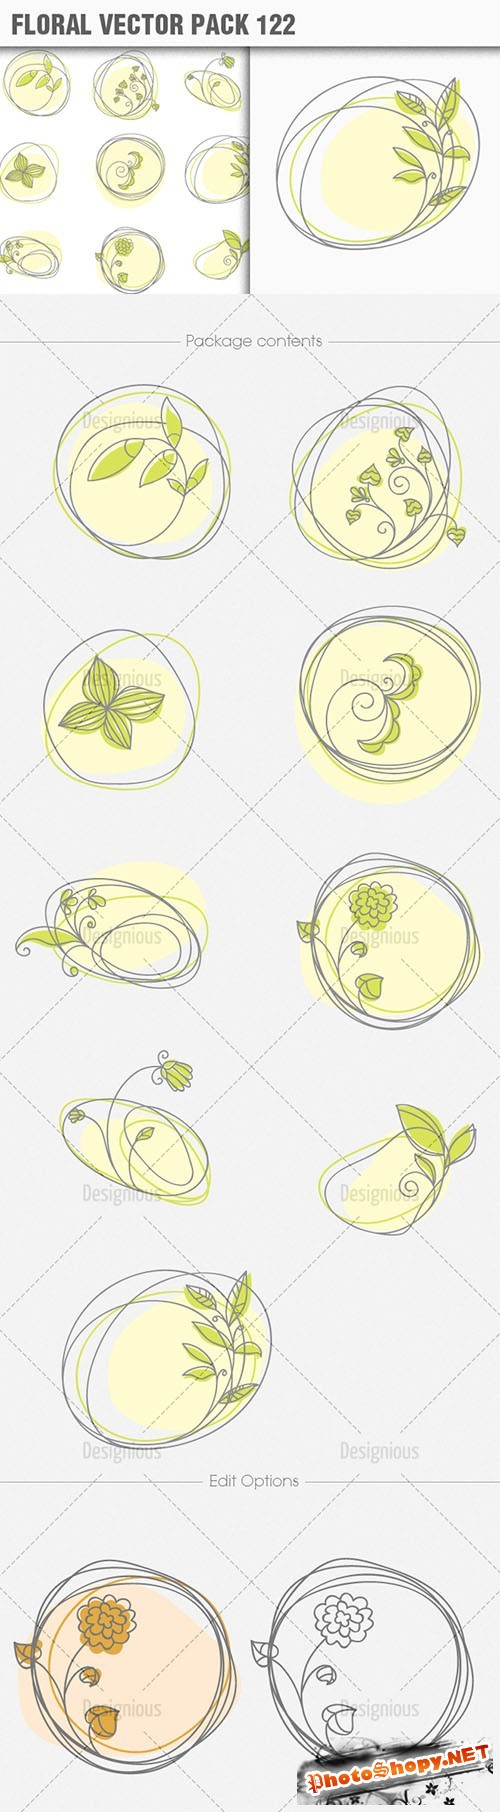 Floral Vector Pack 122